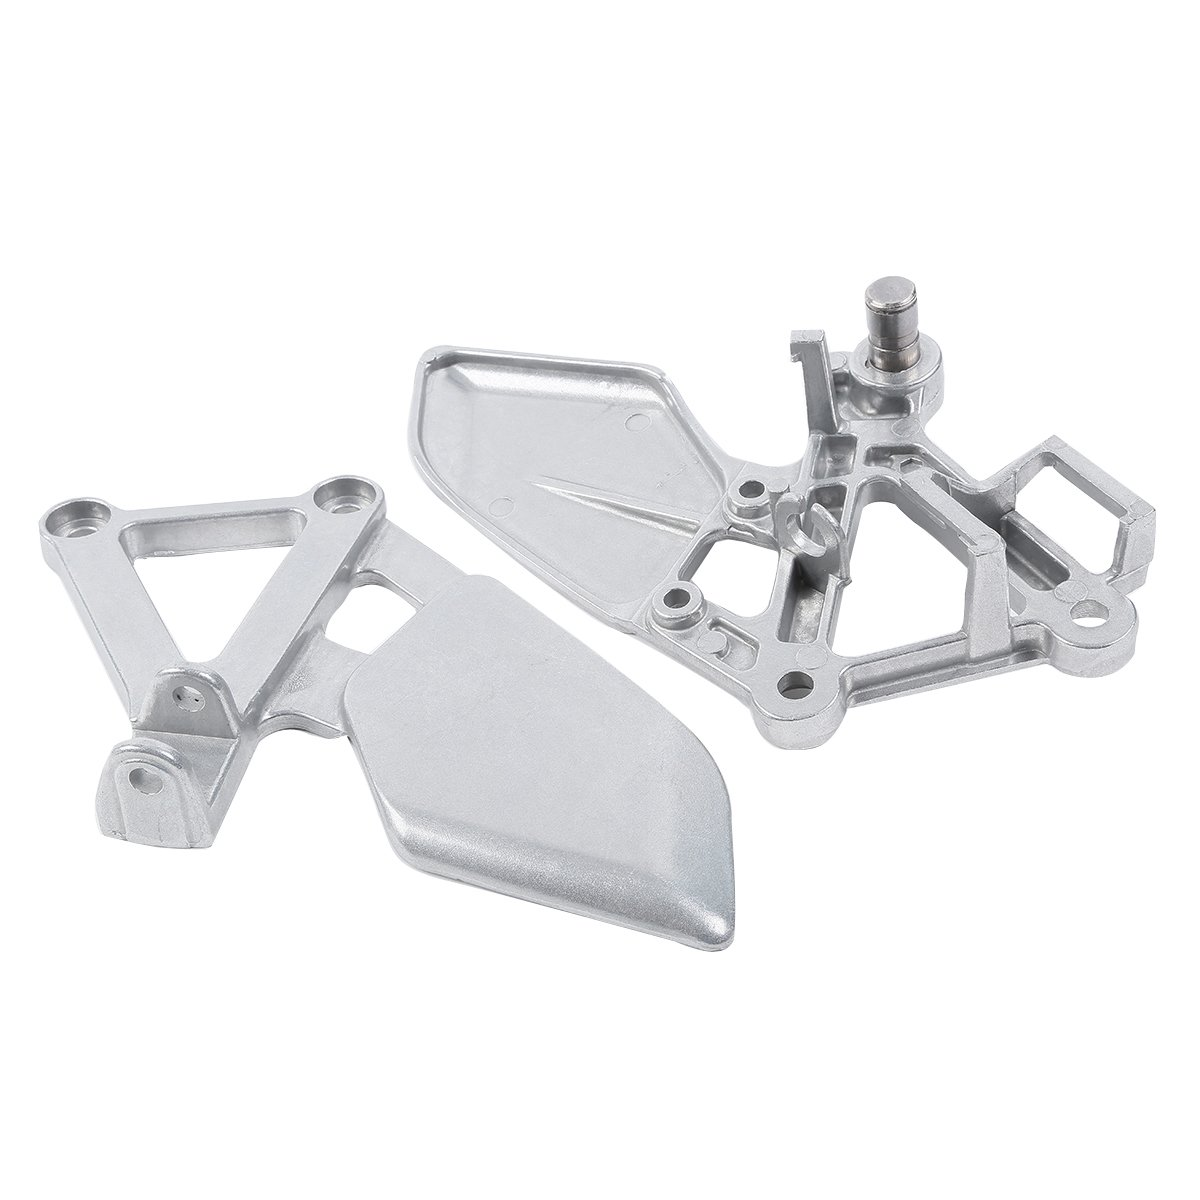 XMT-MOTO Silver Front Rider Foot Rest Peg Bracket For HONDA CBR250 MC19 1988-1989